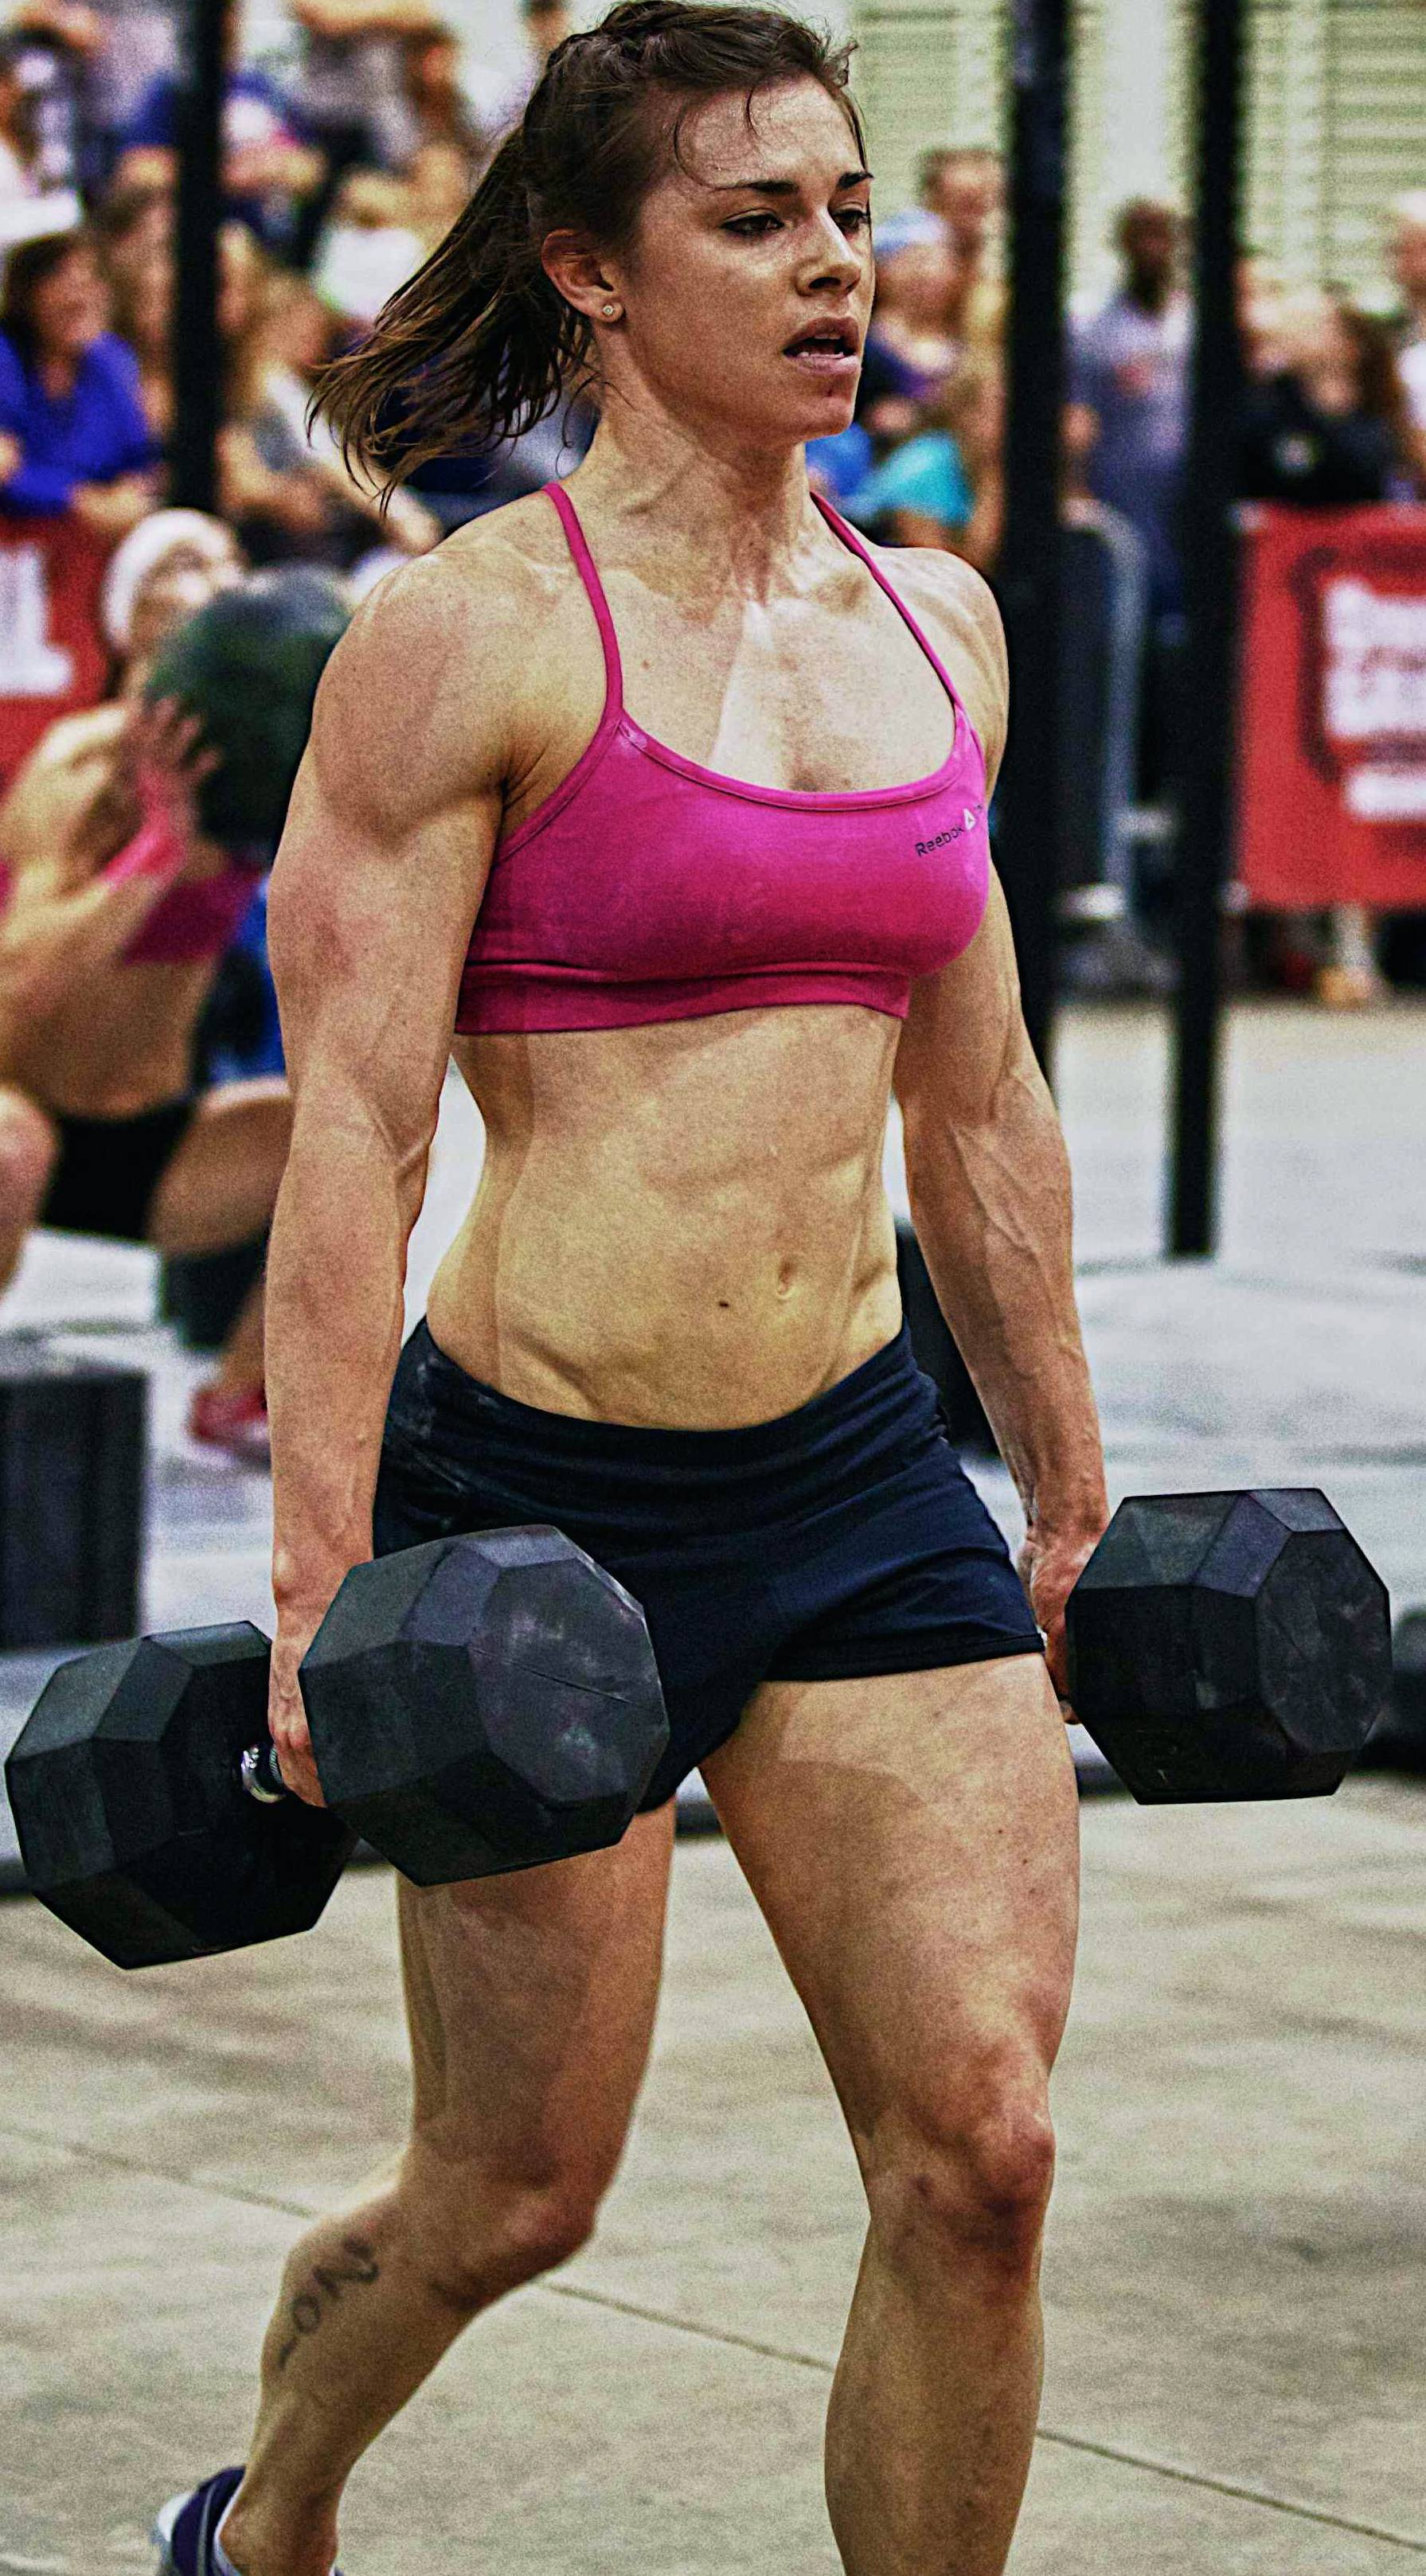 Crossfit body women nude topic simply